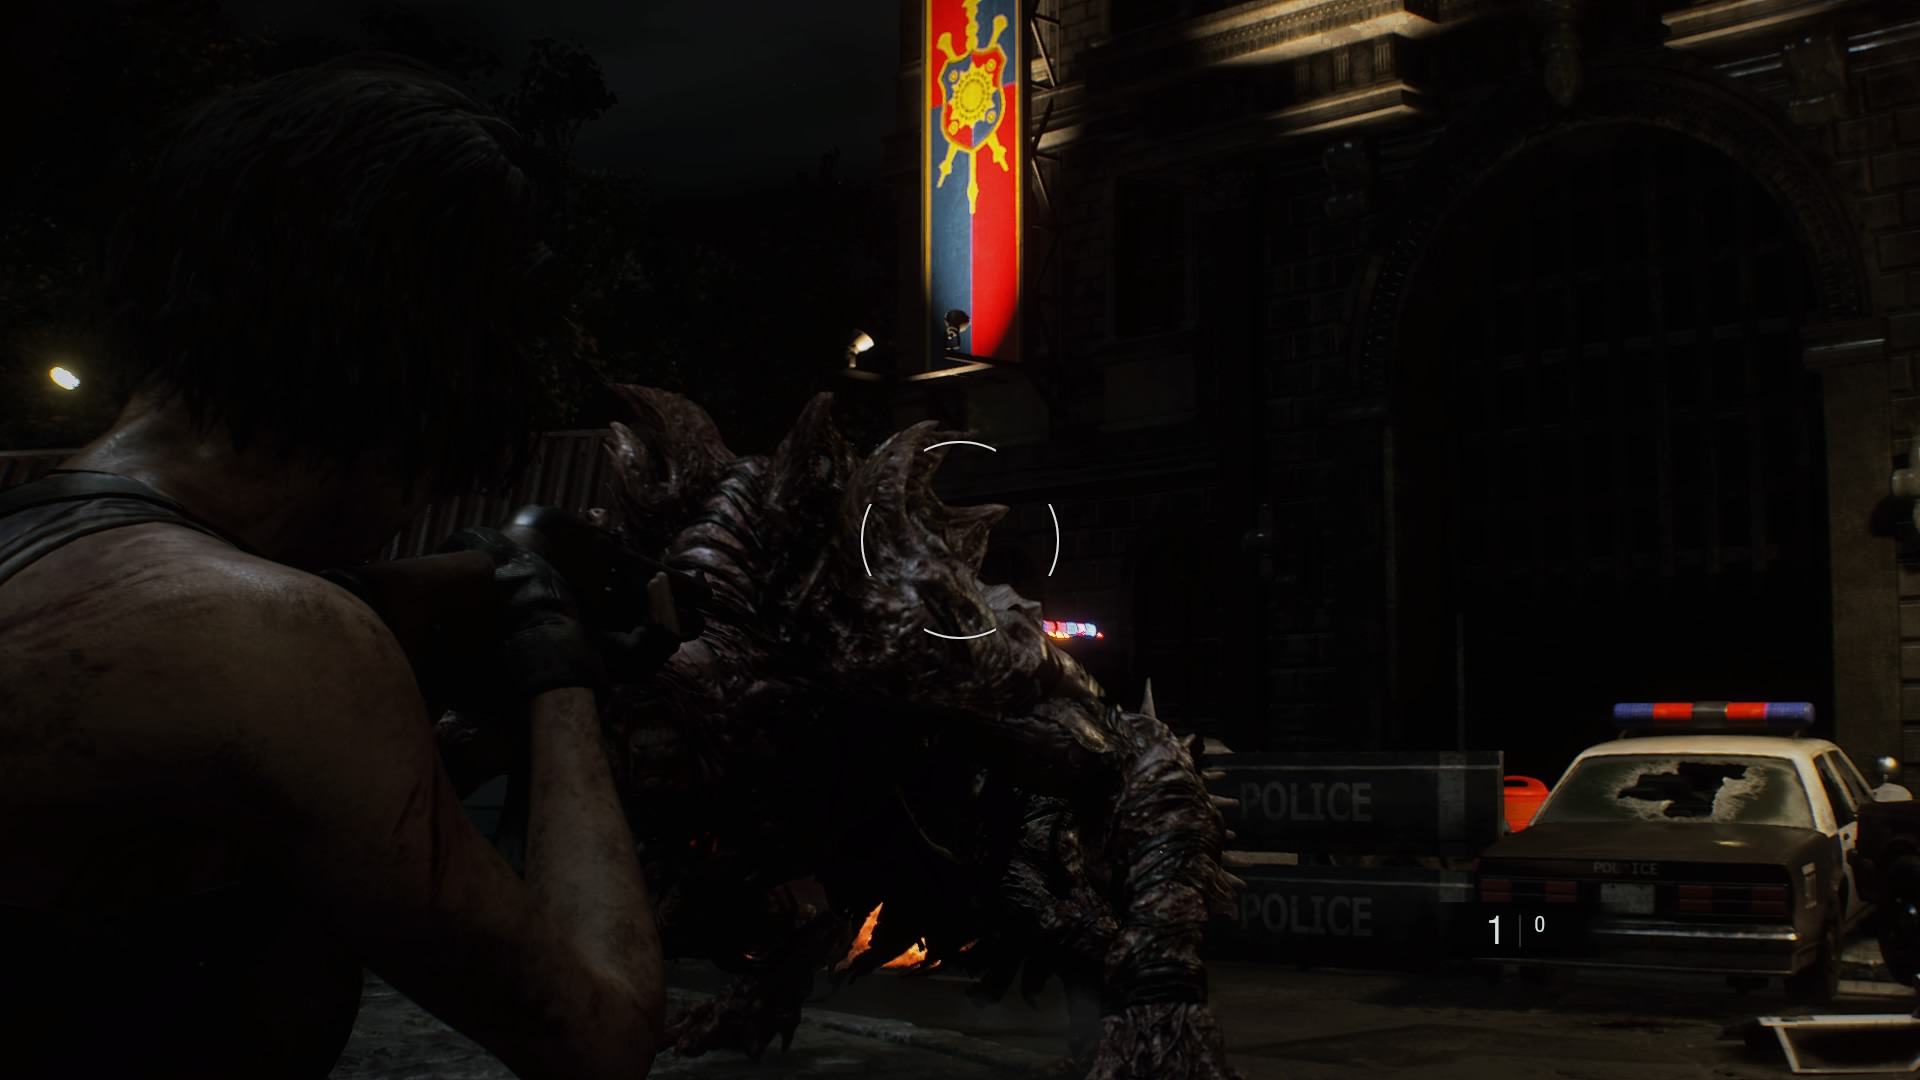 The Complete Guide To Defeating Nemesis In Resident Evil 3 2020